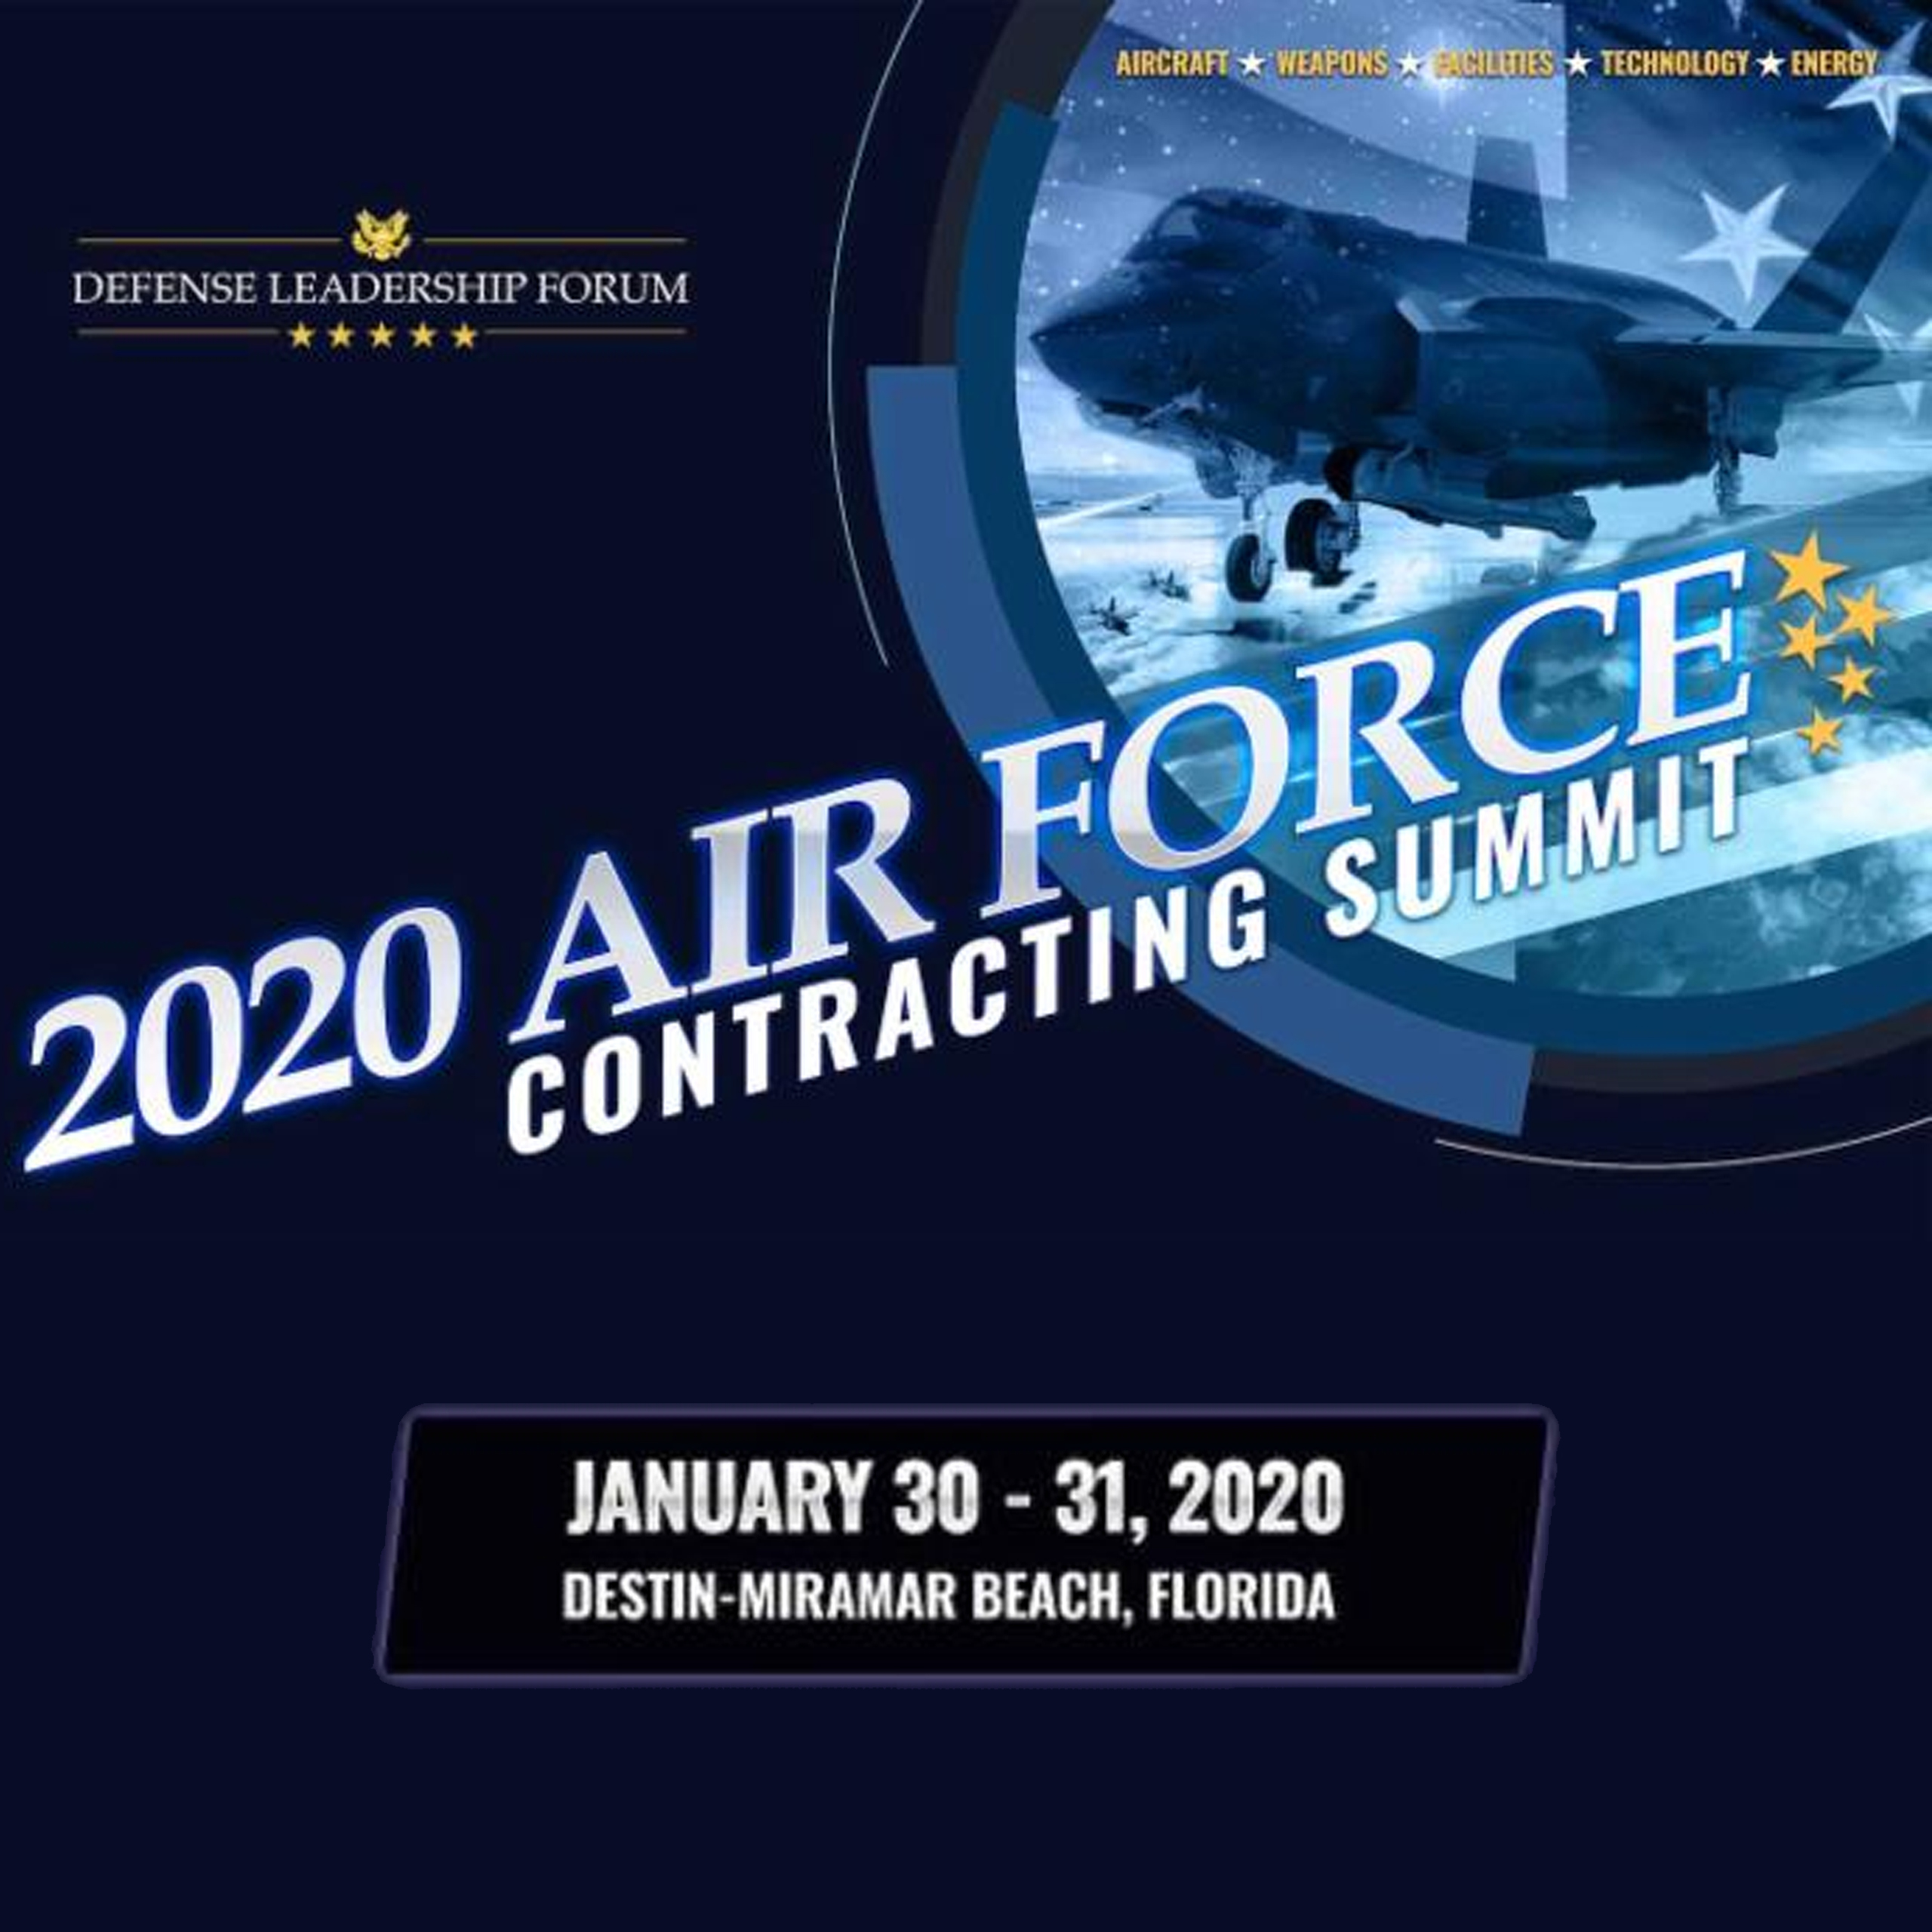 2020 Air Force Contracting Summit